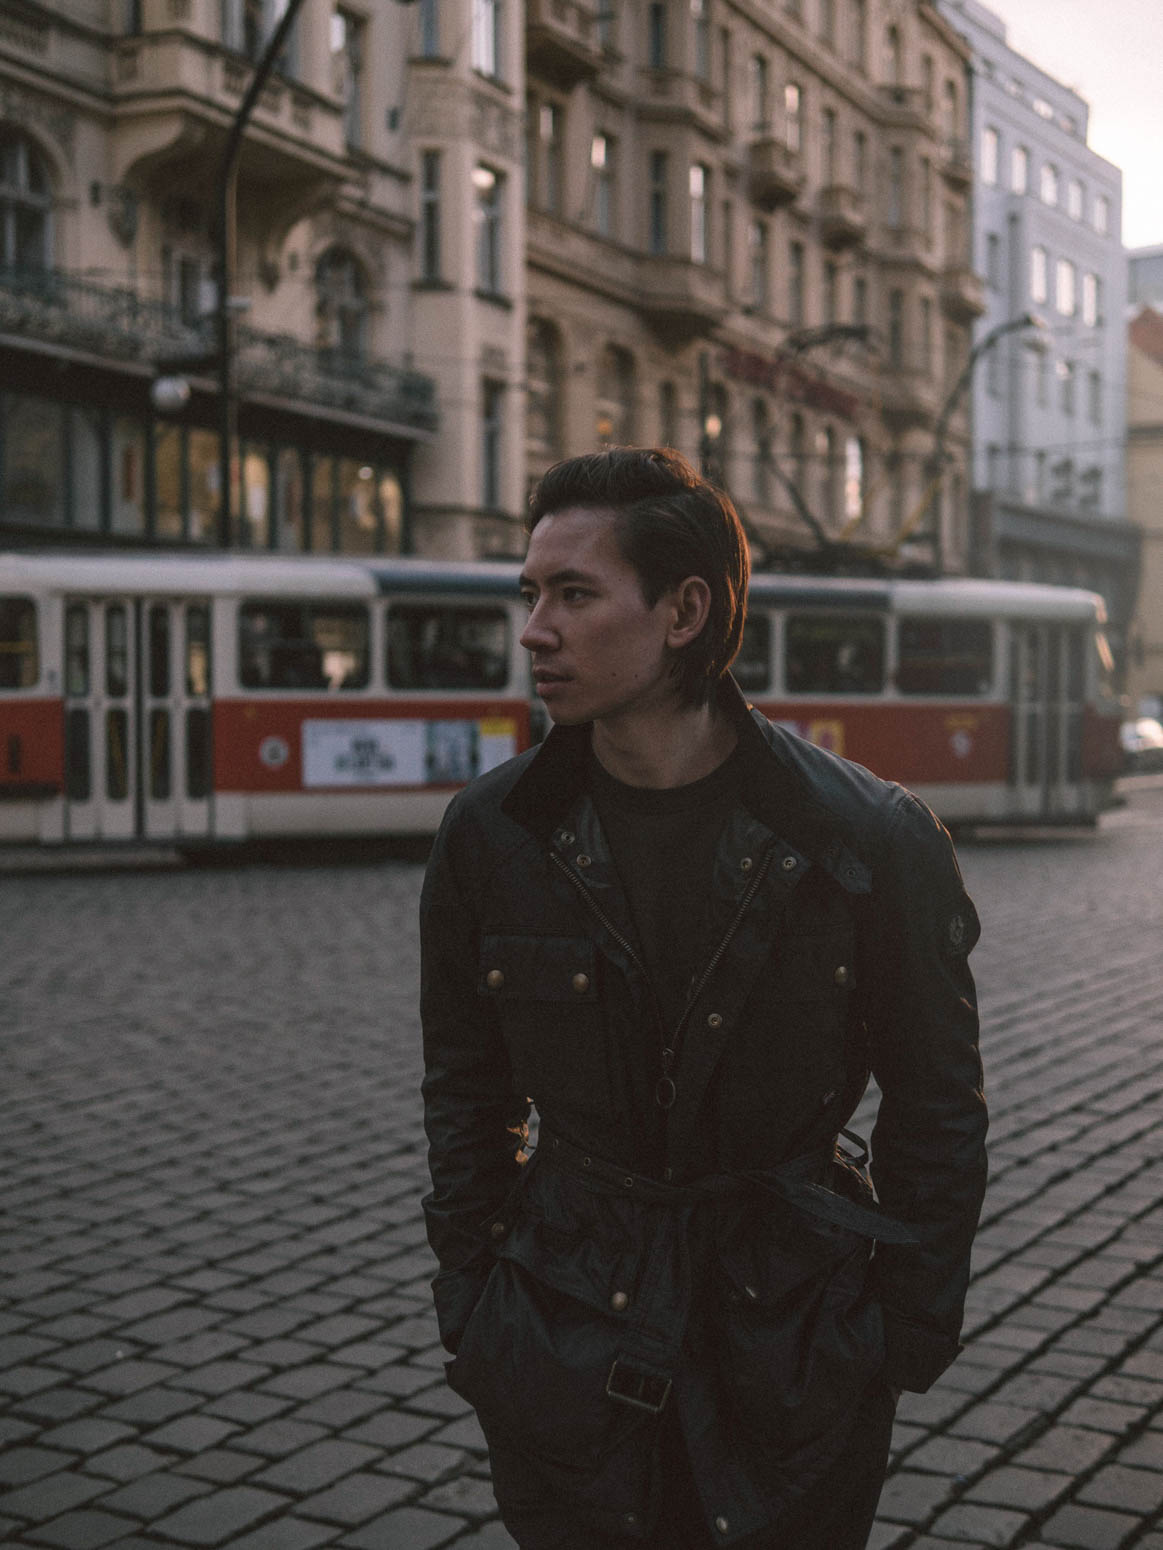 prag-praha-prague-travel-city-visit-street-tram-frank-belstaff-roadmaster